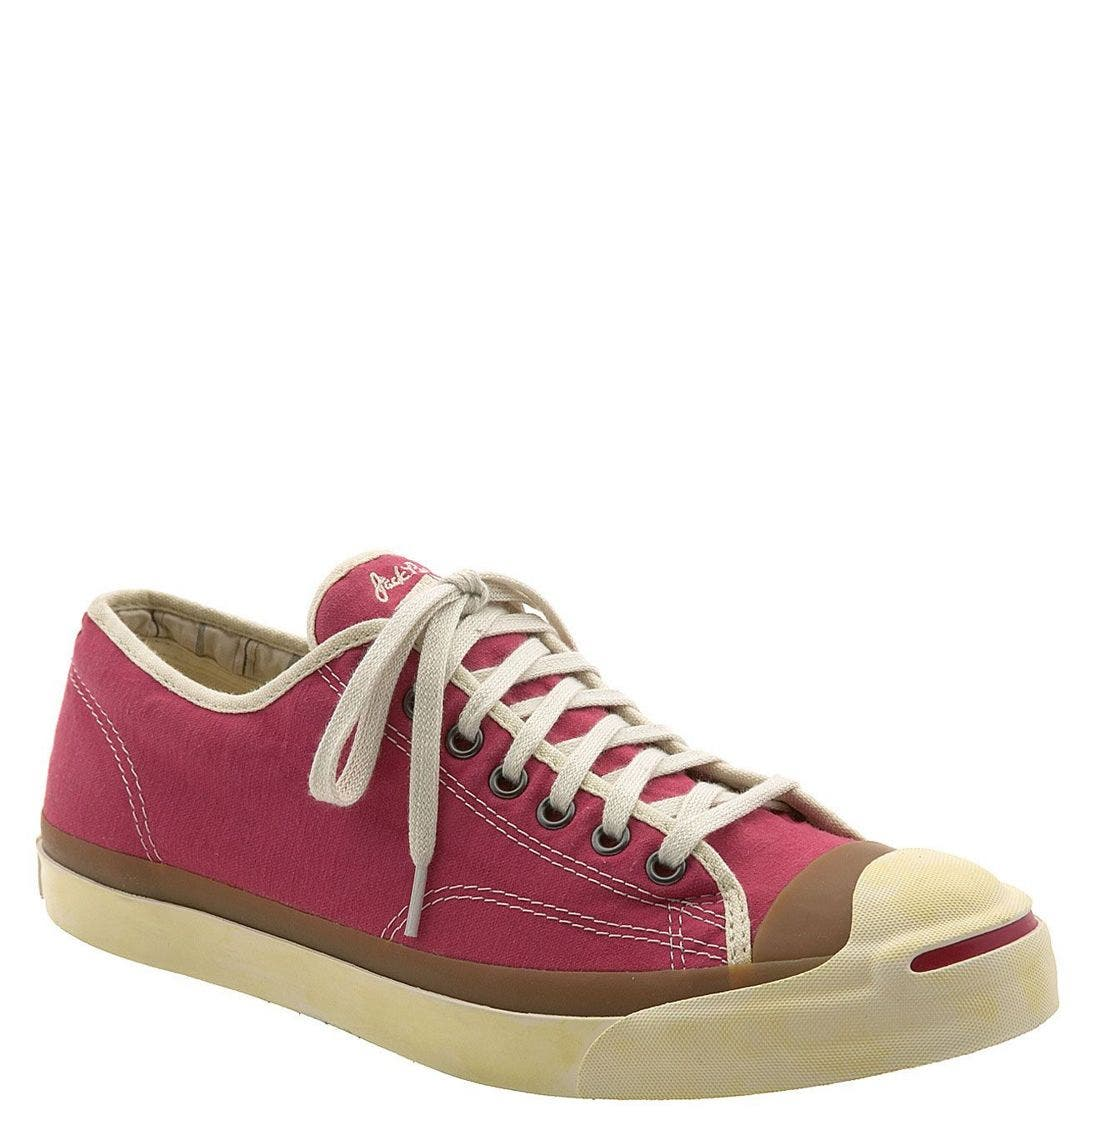 'Jack Purcell' Sneaker,                             Main thumbnail 1, color,                             RED